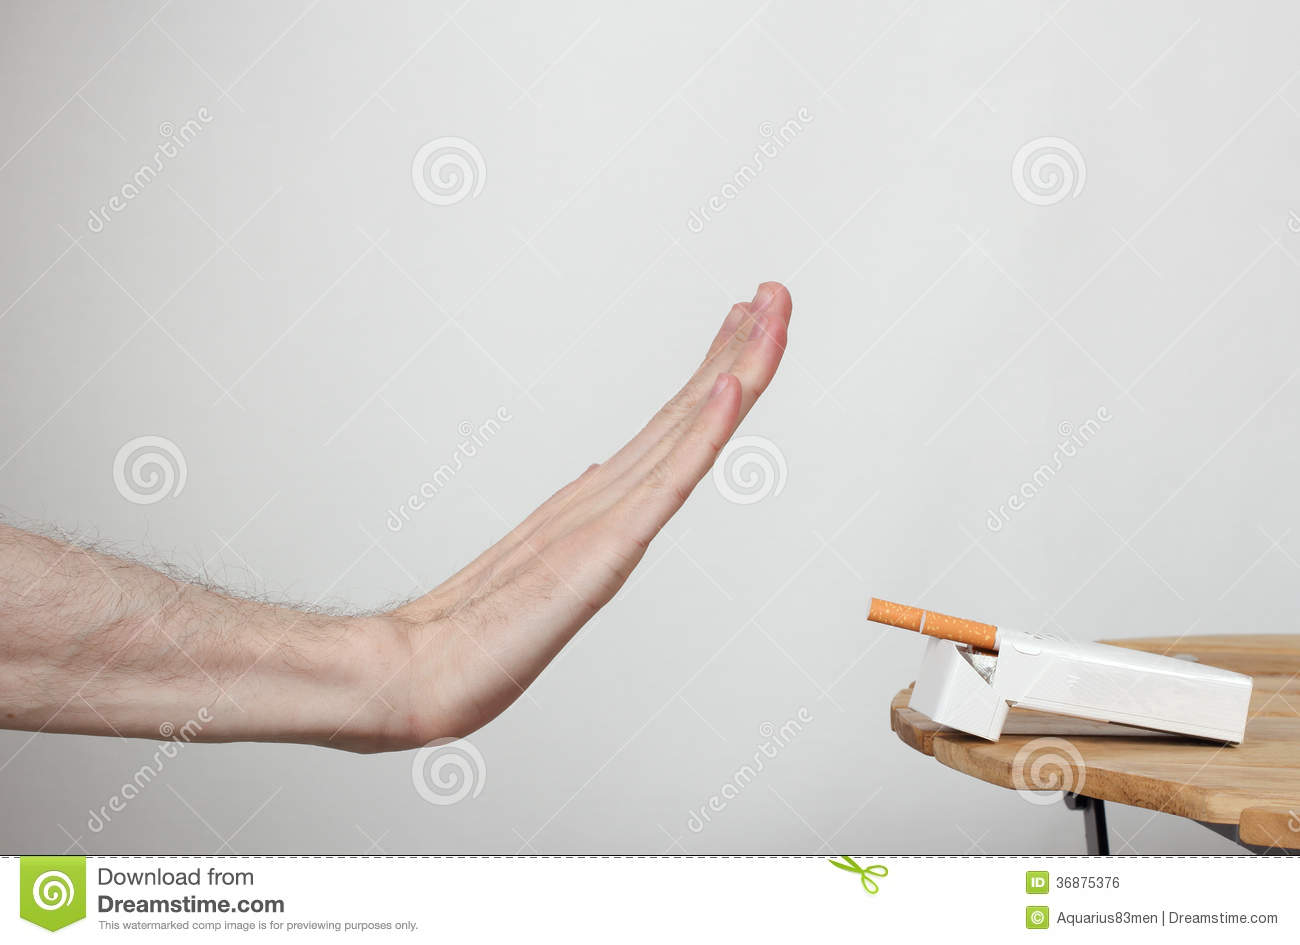 smoking is dangerous to your health essay we can do your dreamstime com